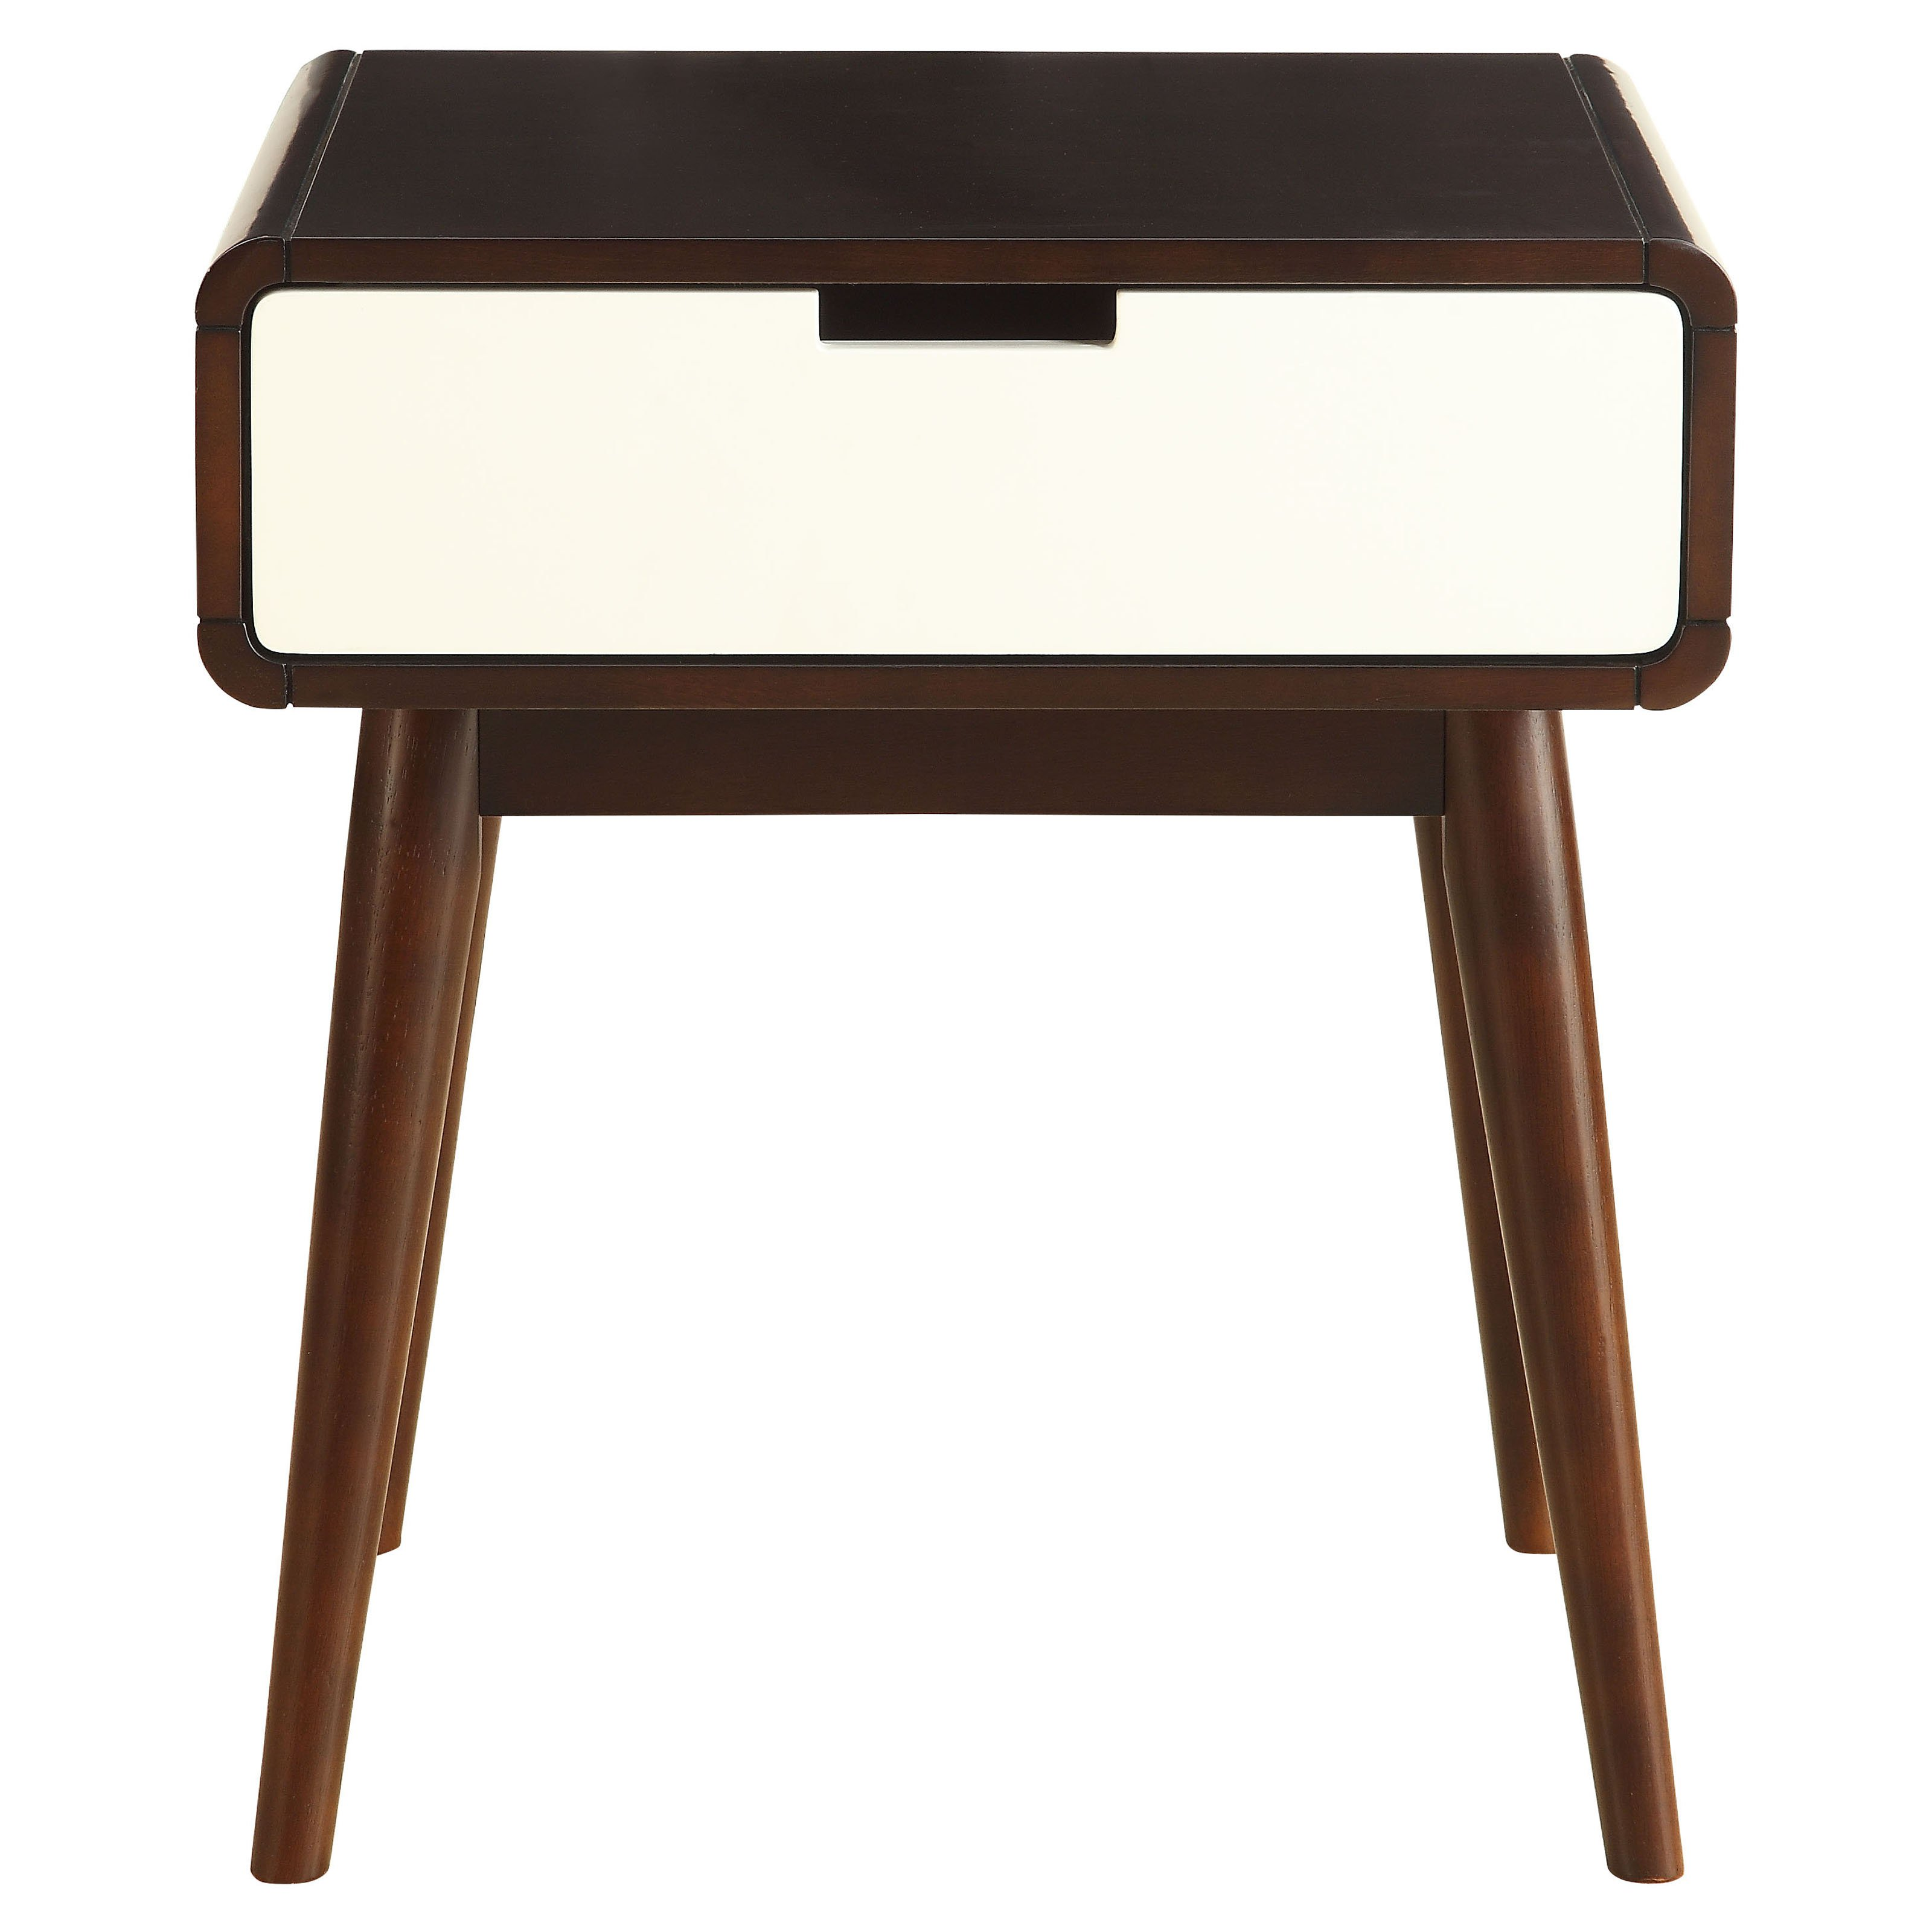 ACME Christa End Table, Walnut and White